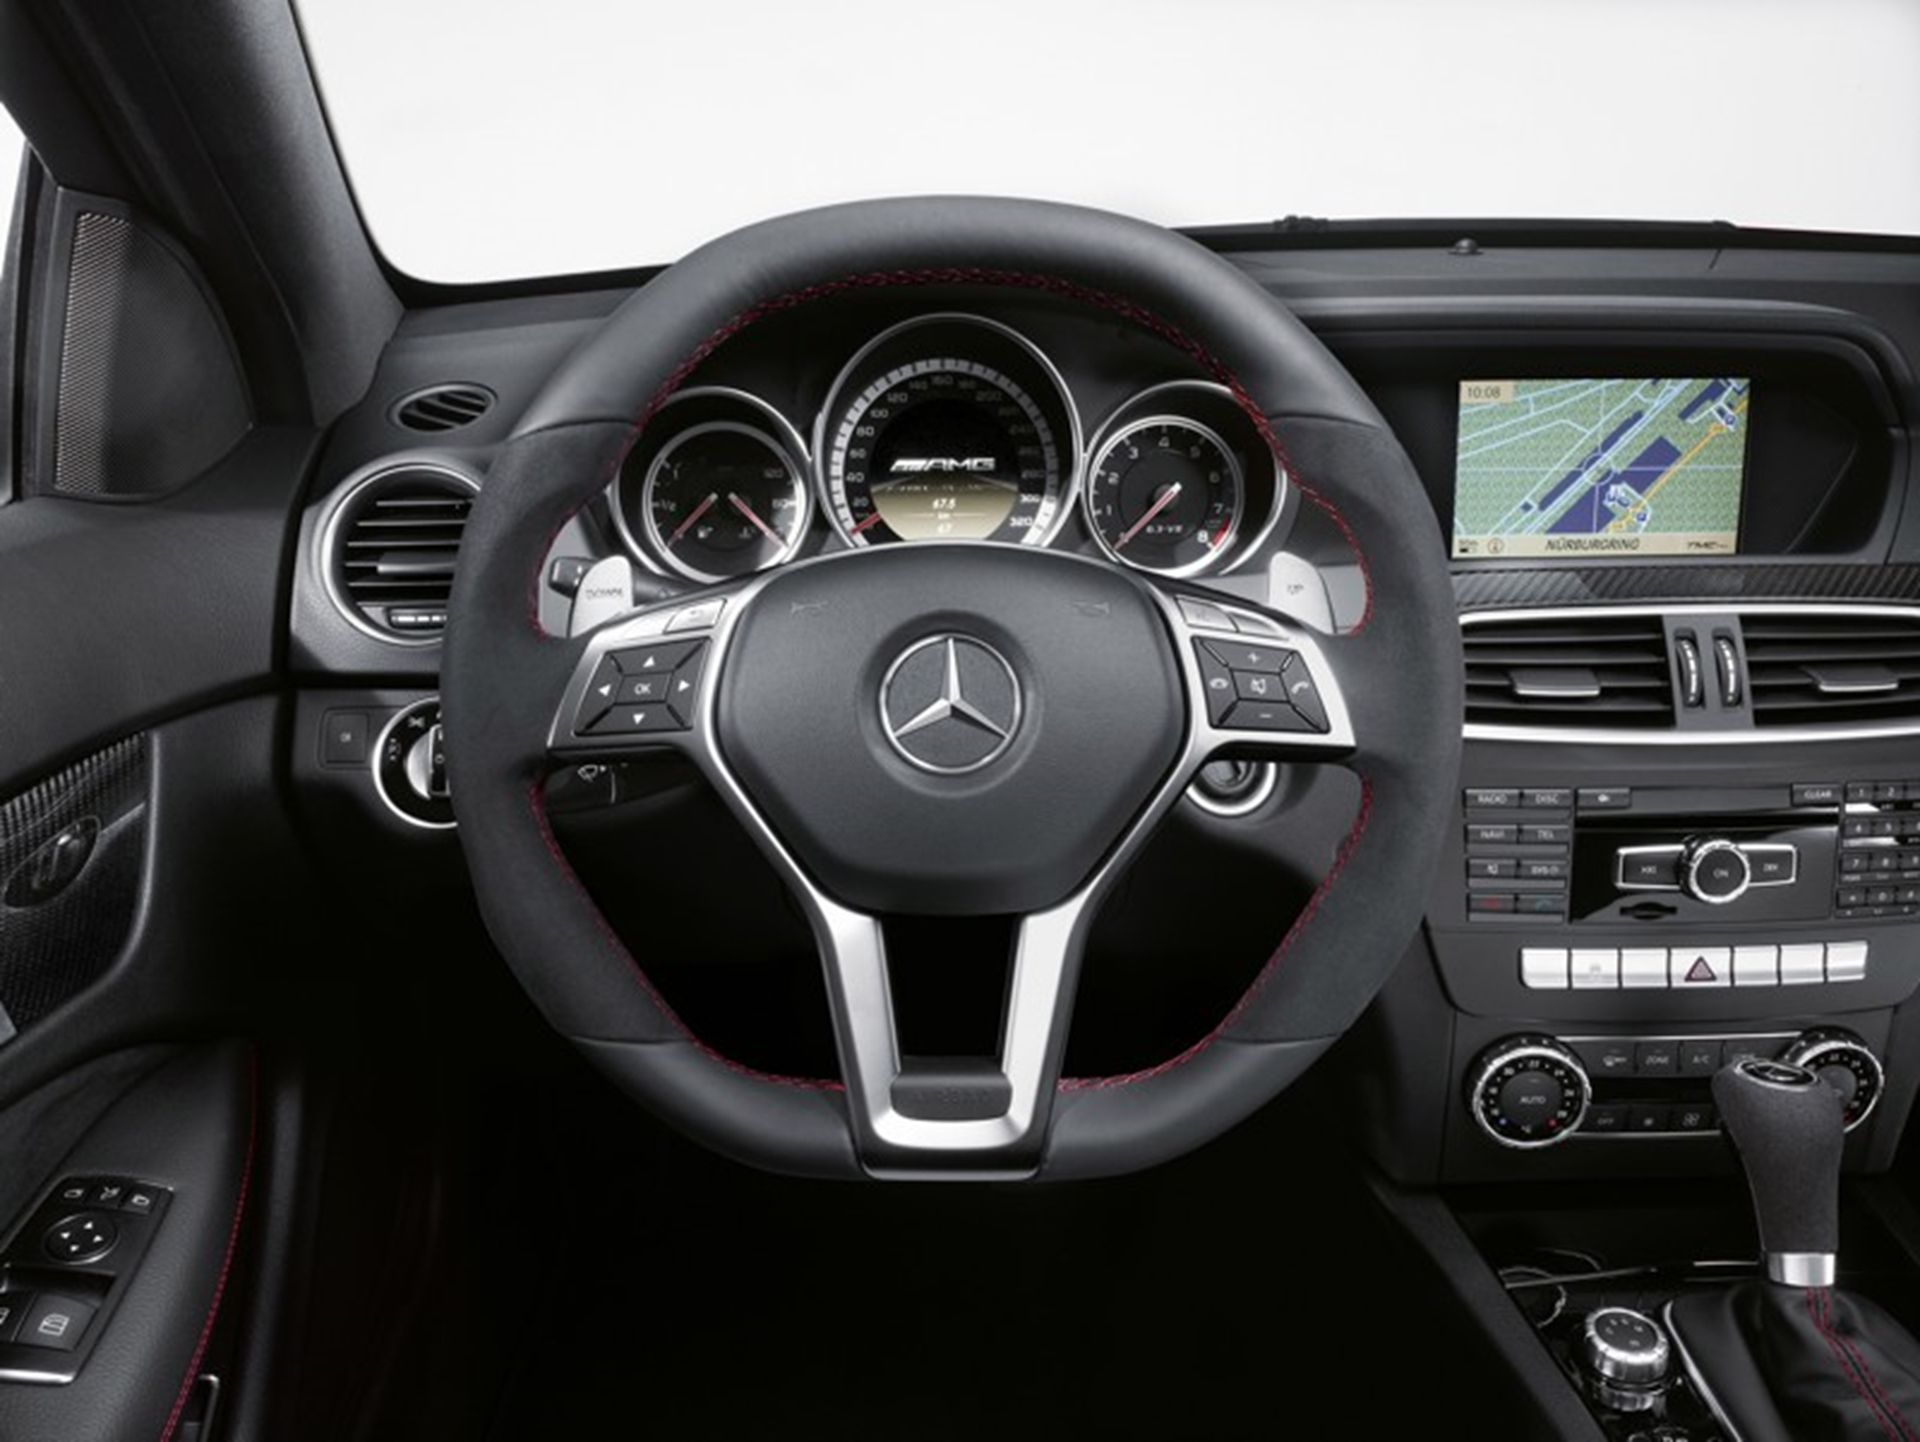 C 63 AMG Black Series 2011 Steering